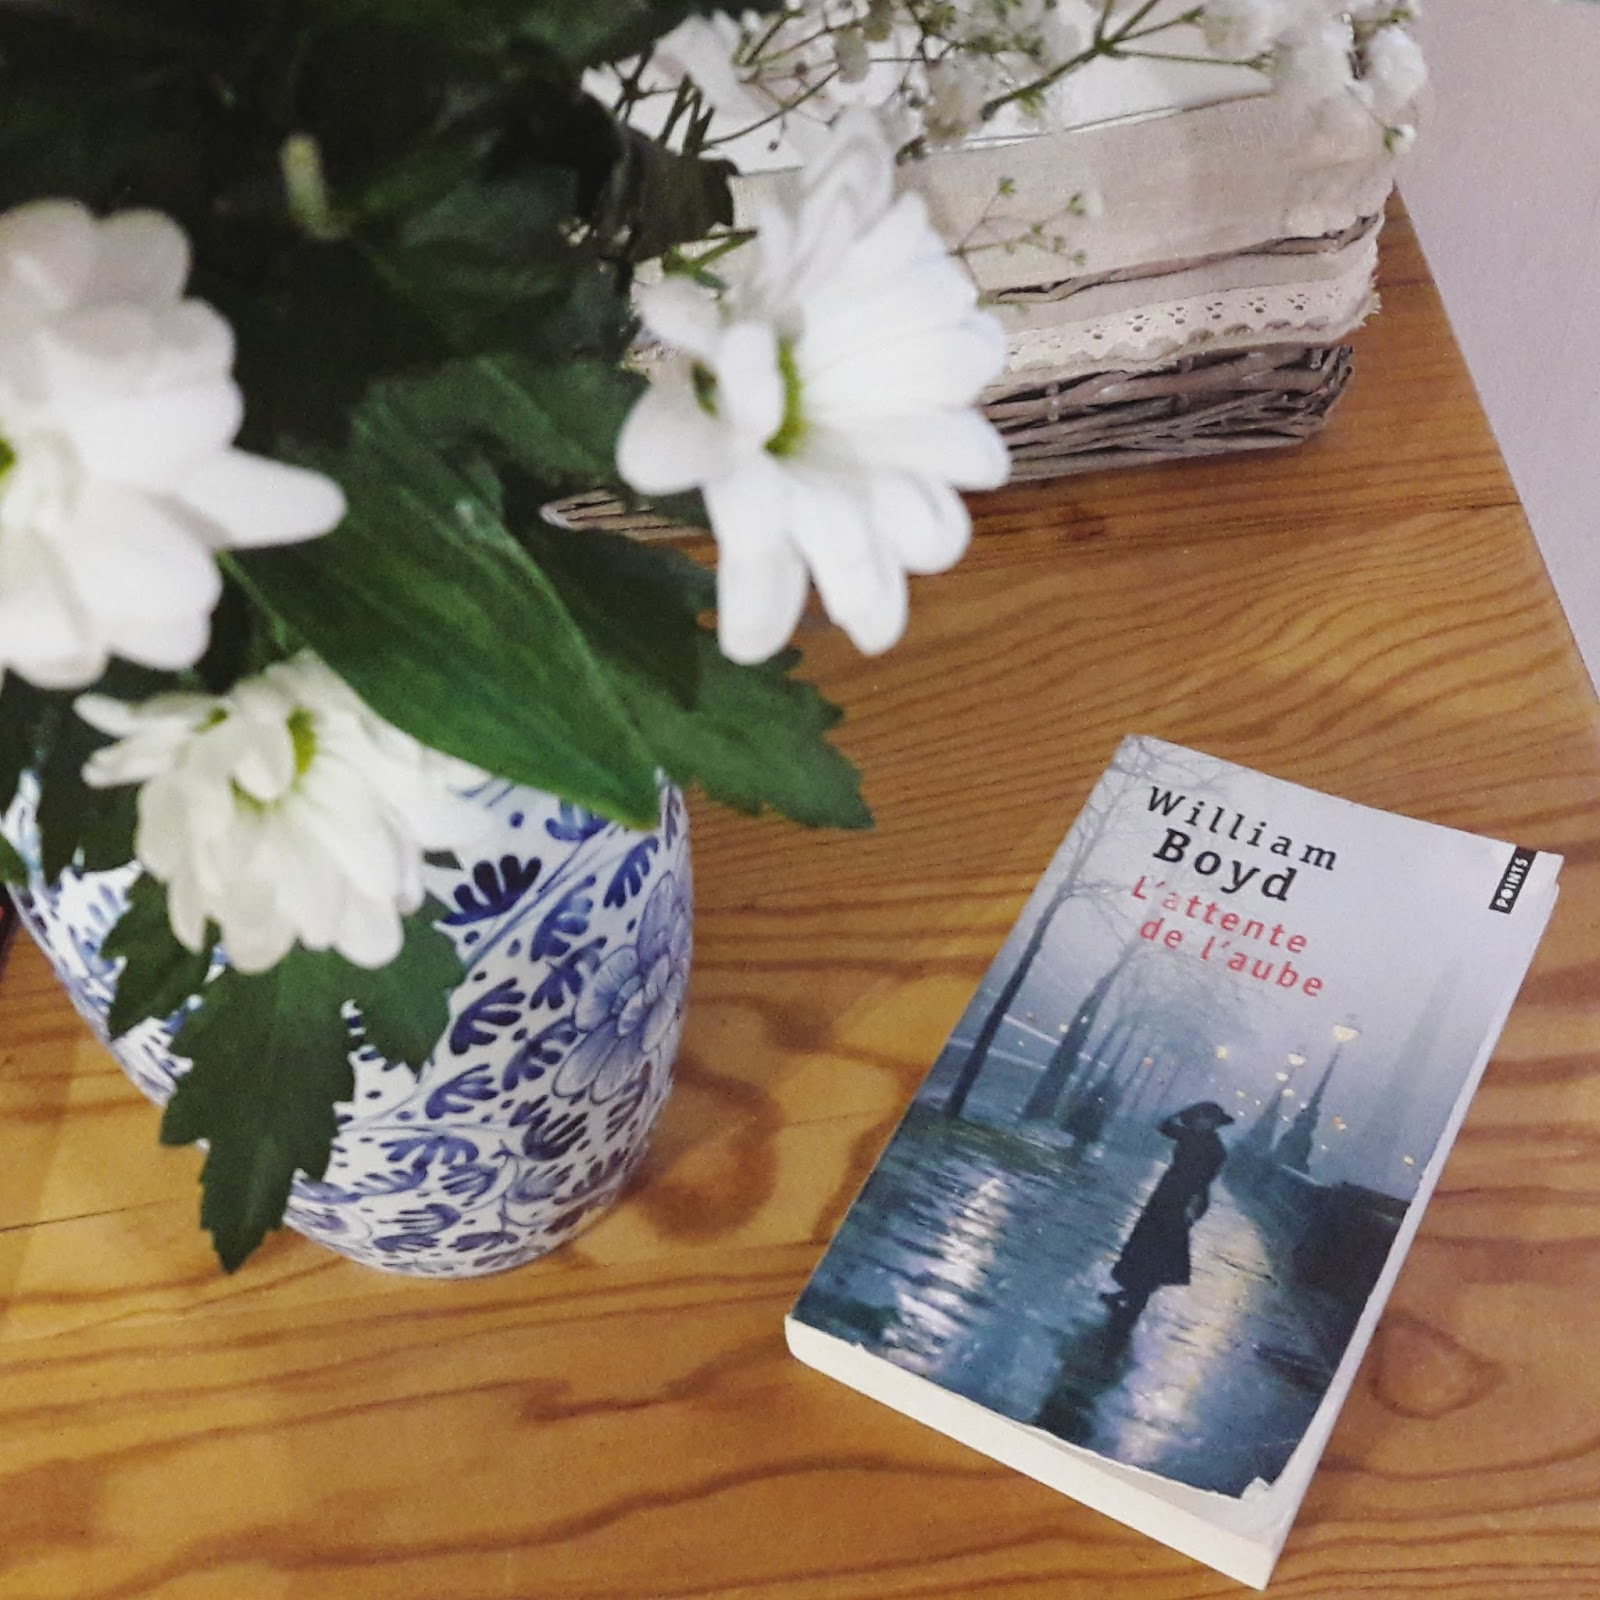 L'attente de l'aube de William Boyd